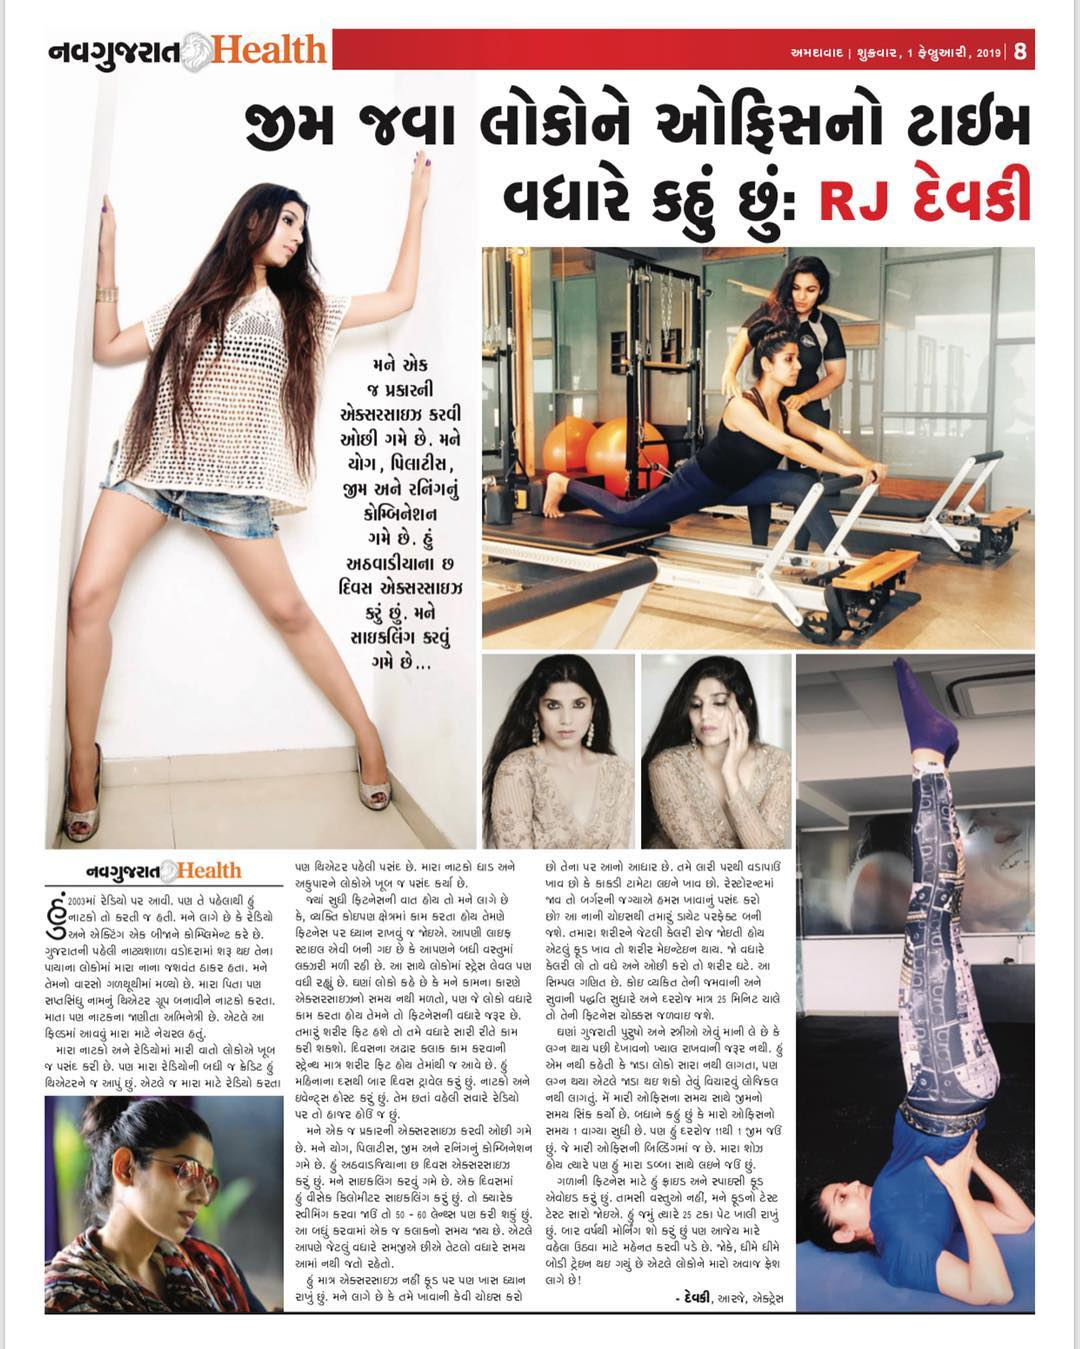 For all the ones who keep using the excuse of #NoTime to avoid workout..... I feel you but I know you can do better ❤️ here r some ideas that can help @navgujaratsamayofficial